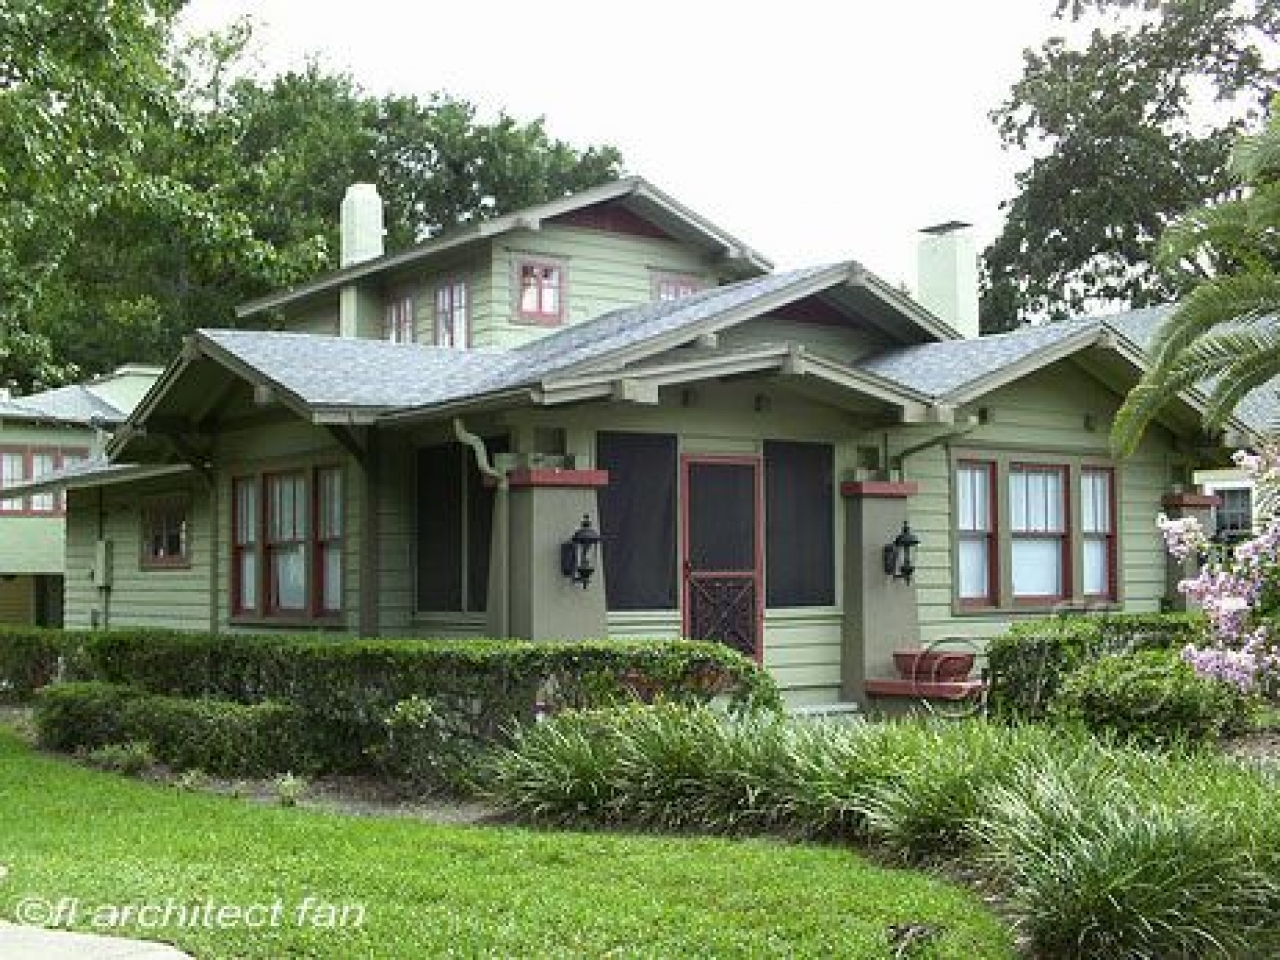 California bungalow style homes craftsman bungalow style for California bungalow house